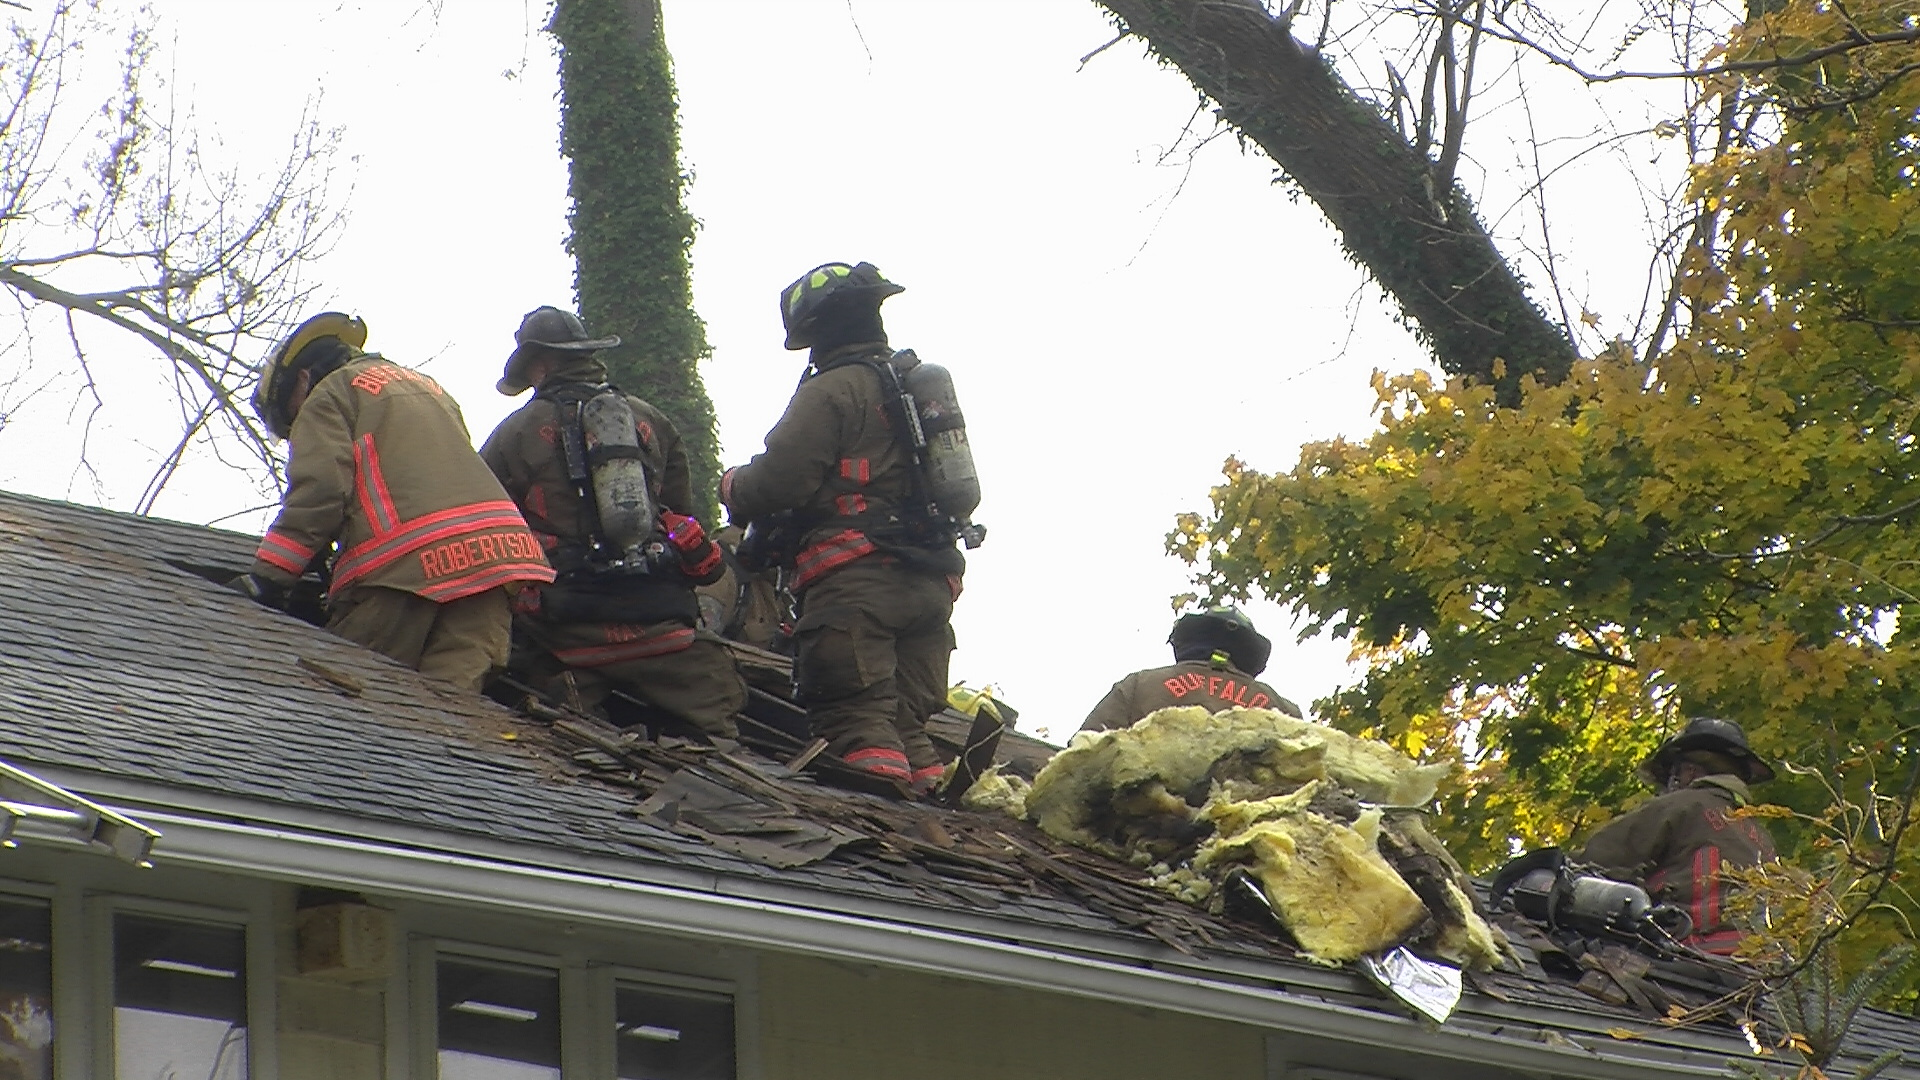 Buffalo firefighters cut the roof of a home on Tillinghast Place in North Buffalo. Photo by Joseph Popiolkowski / Buffalo News.